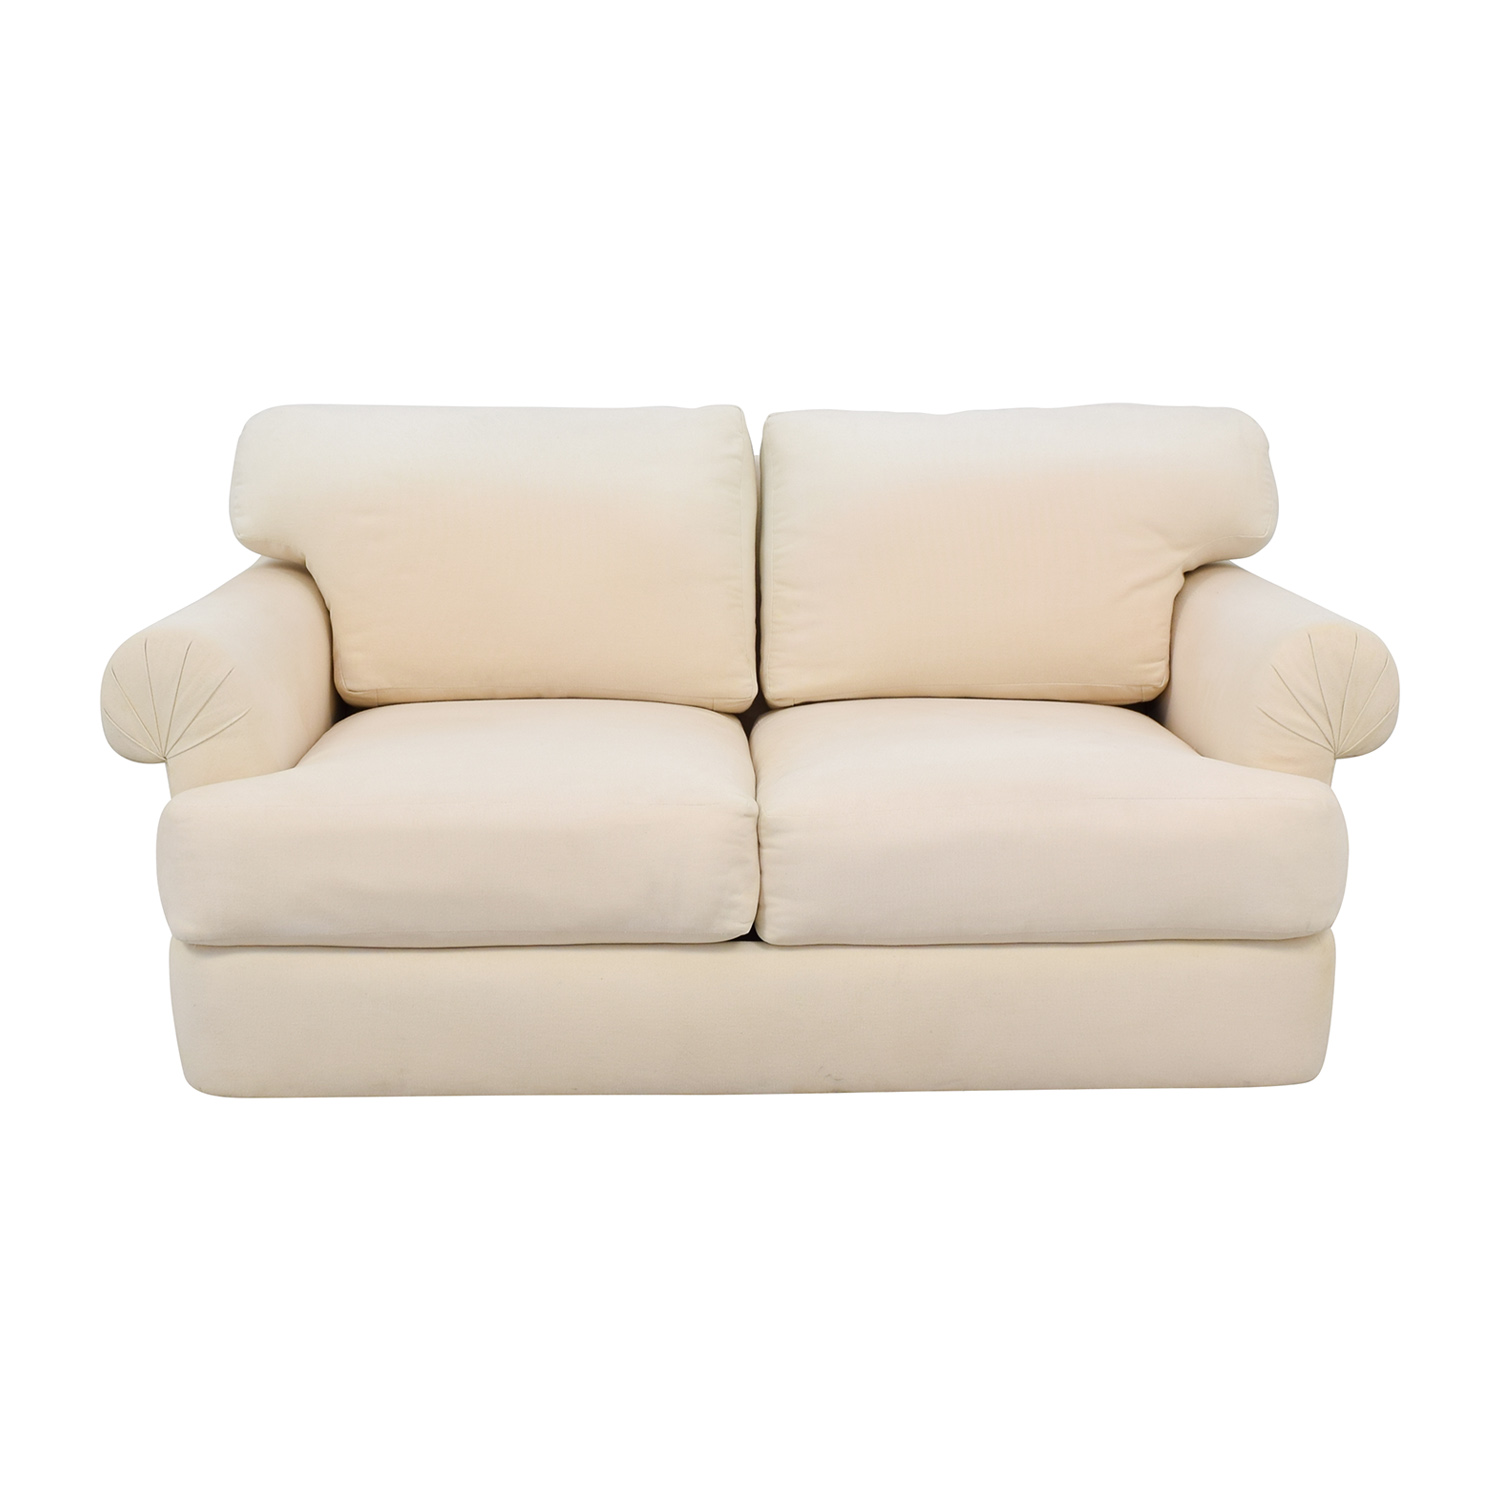 Two Cushion Loveseat discount